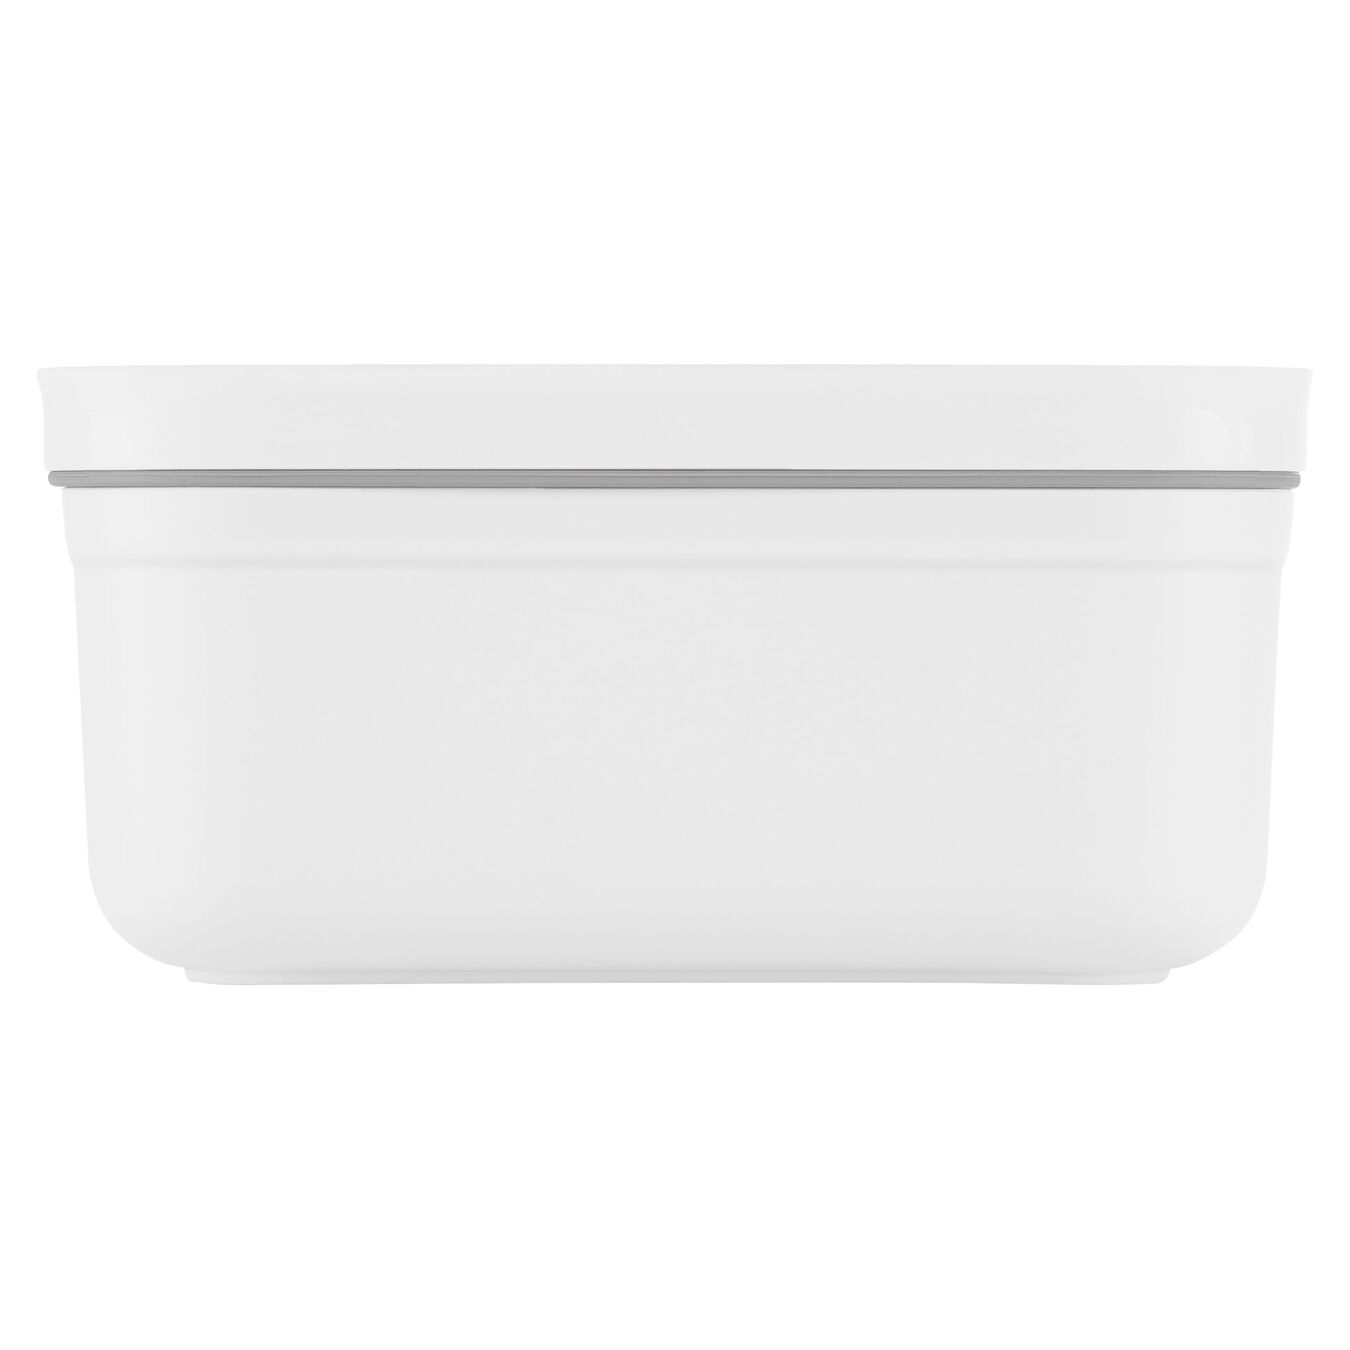 Vacuum lunch box, small, White,,large 2